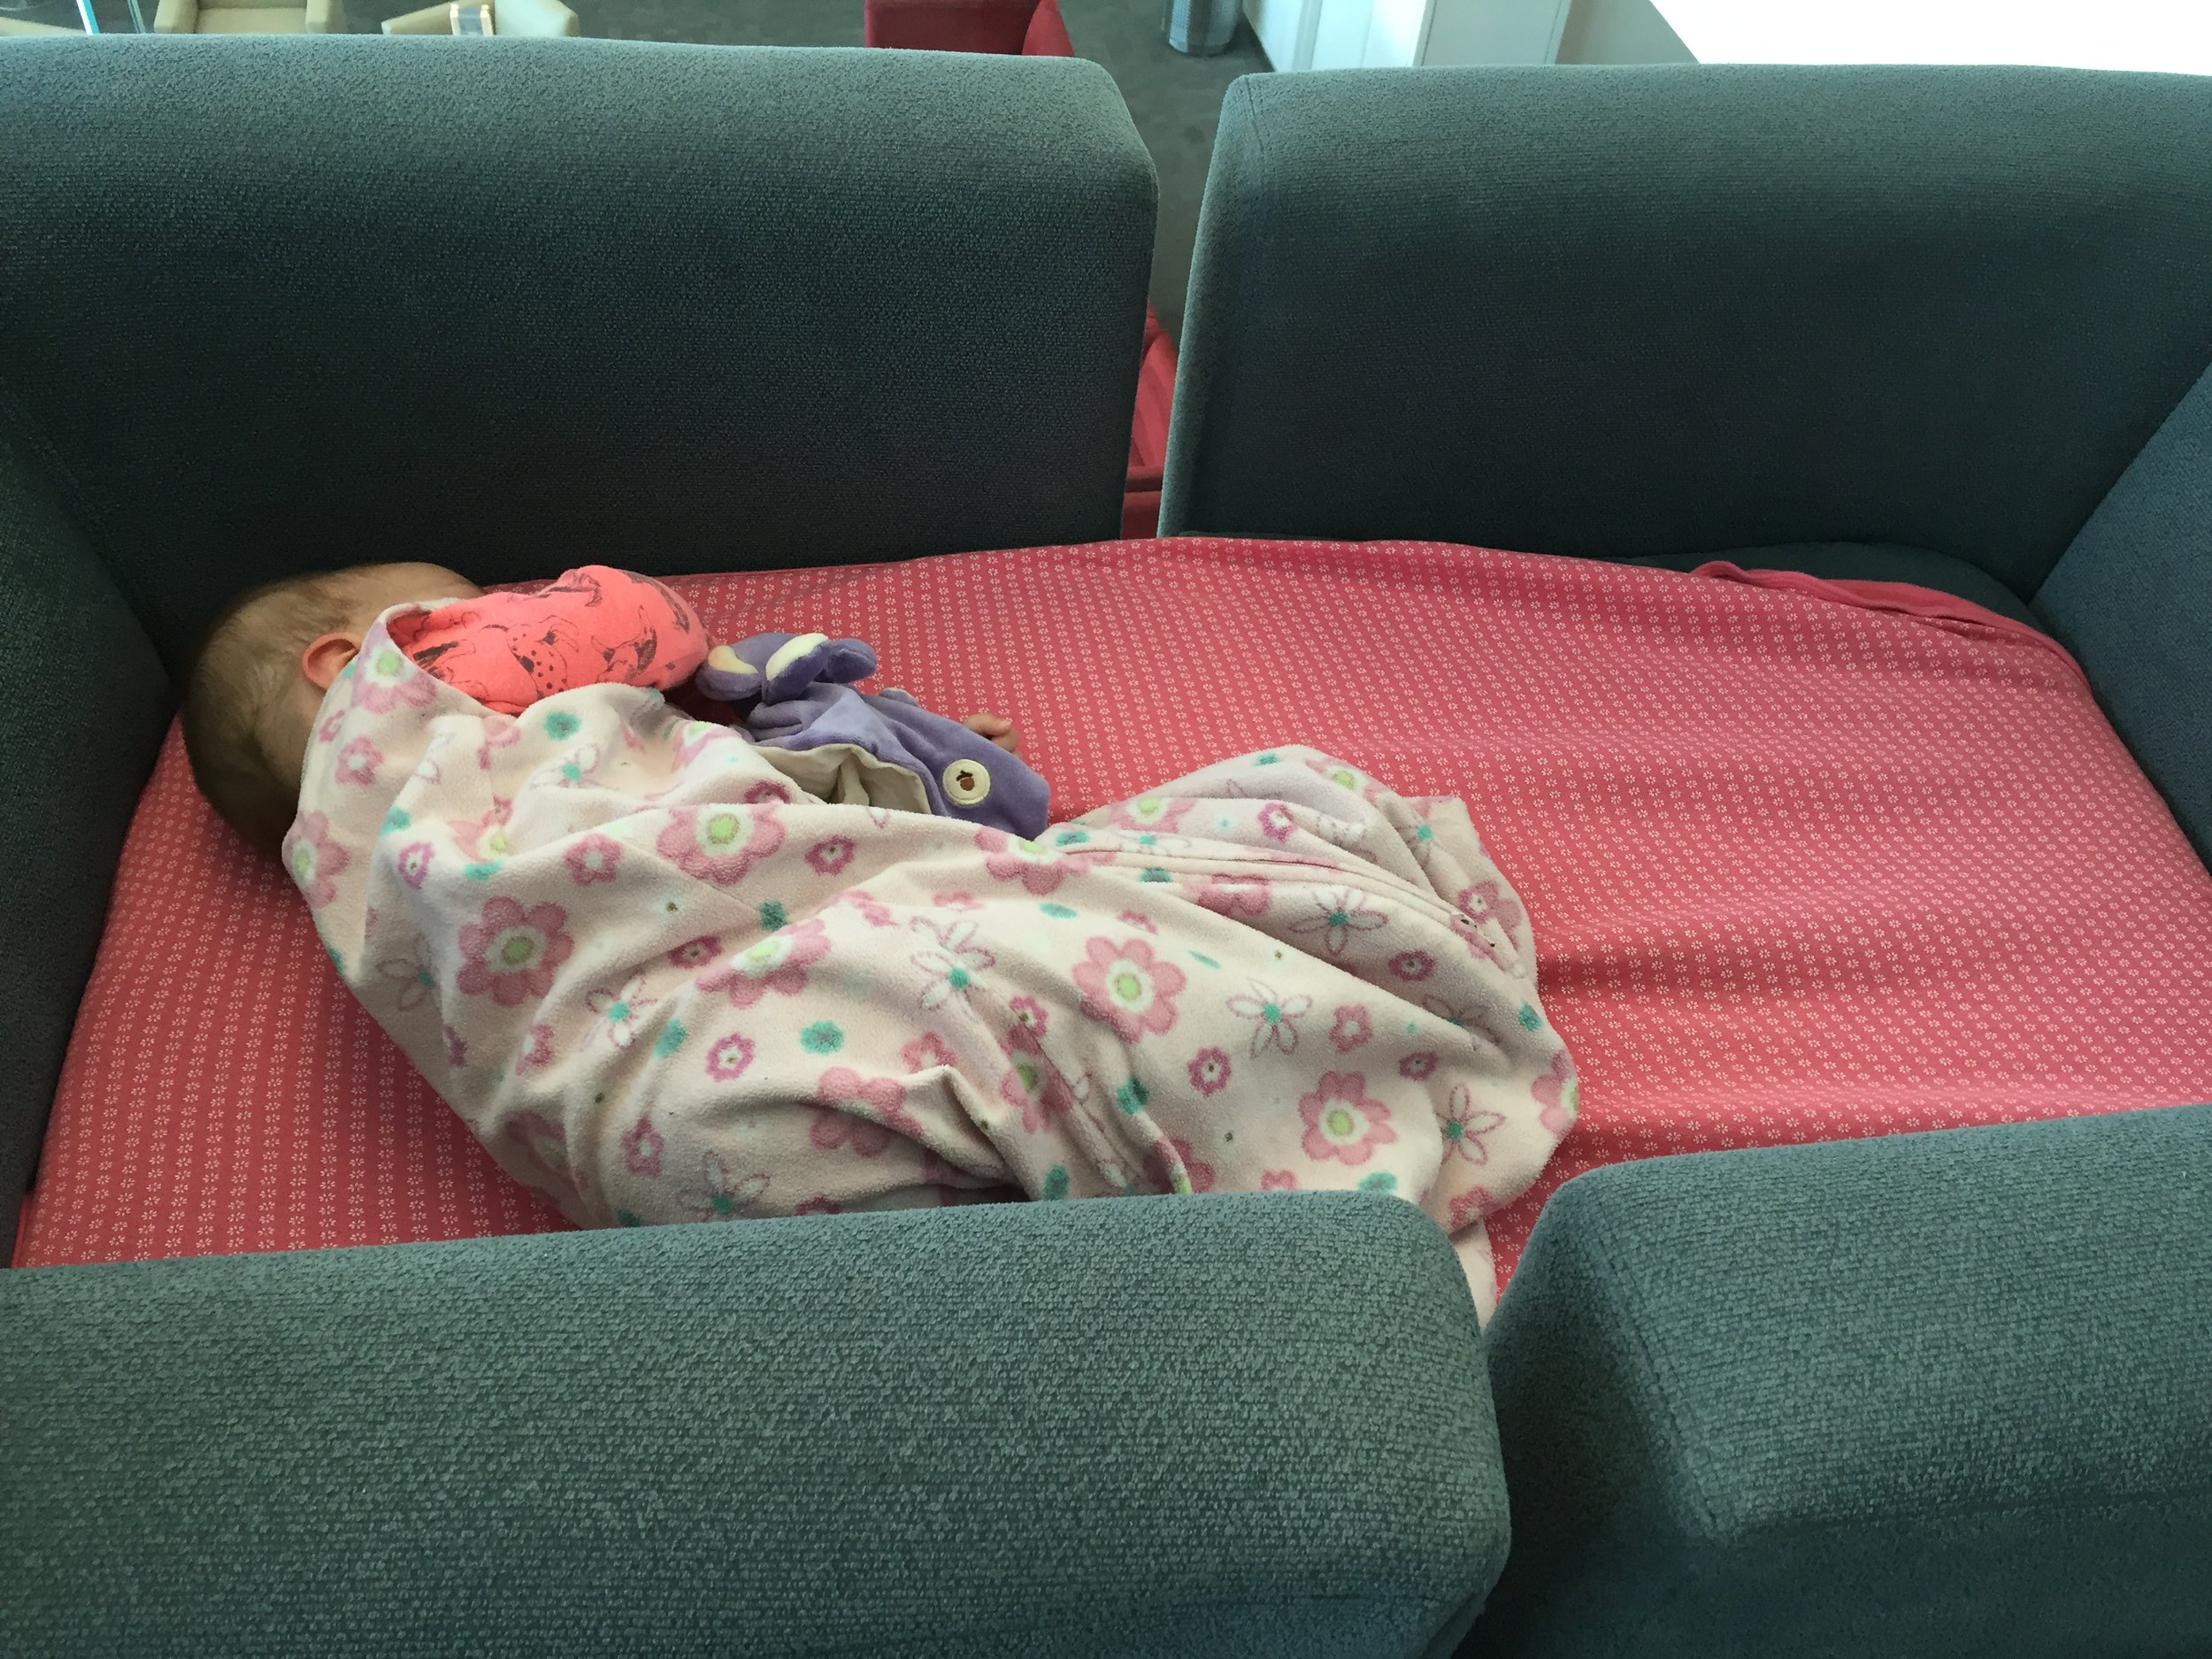 Our daughter, age 6 months, sleeping in a bed we made by pulling to chairs together in the international lounge in atlanta